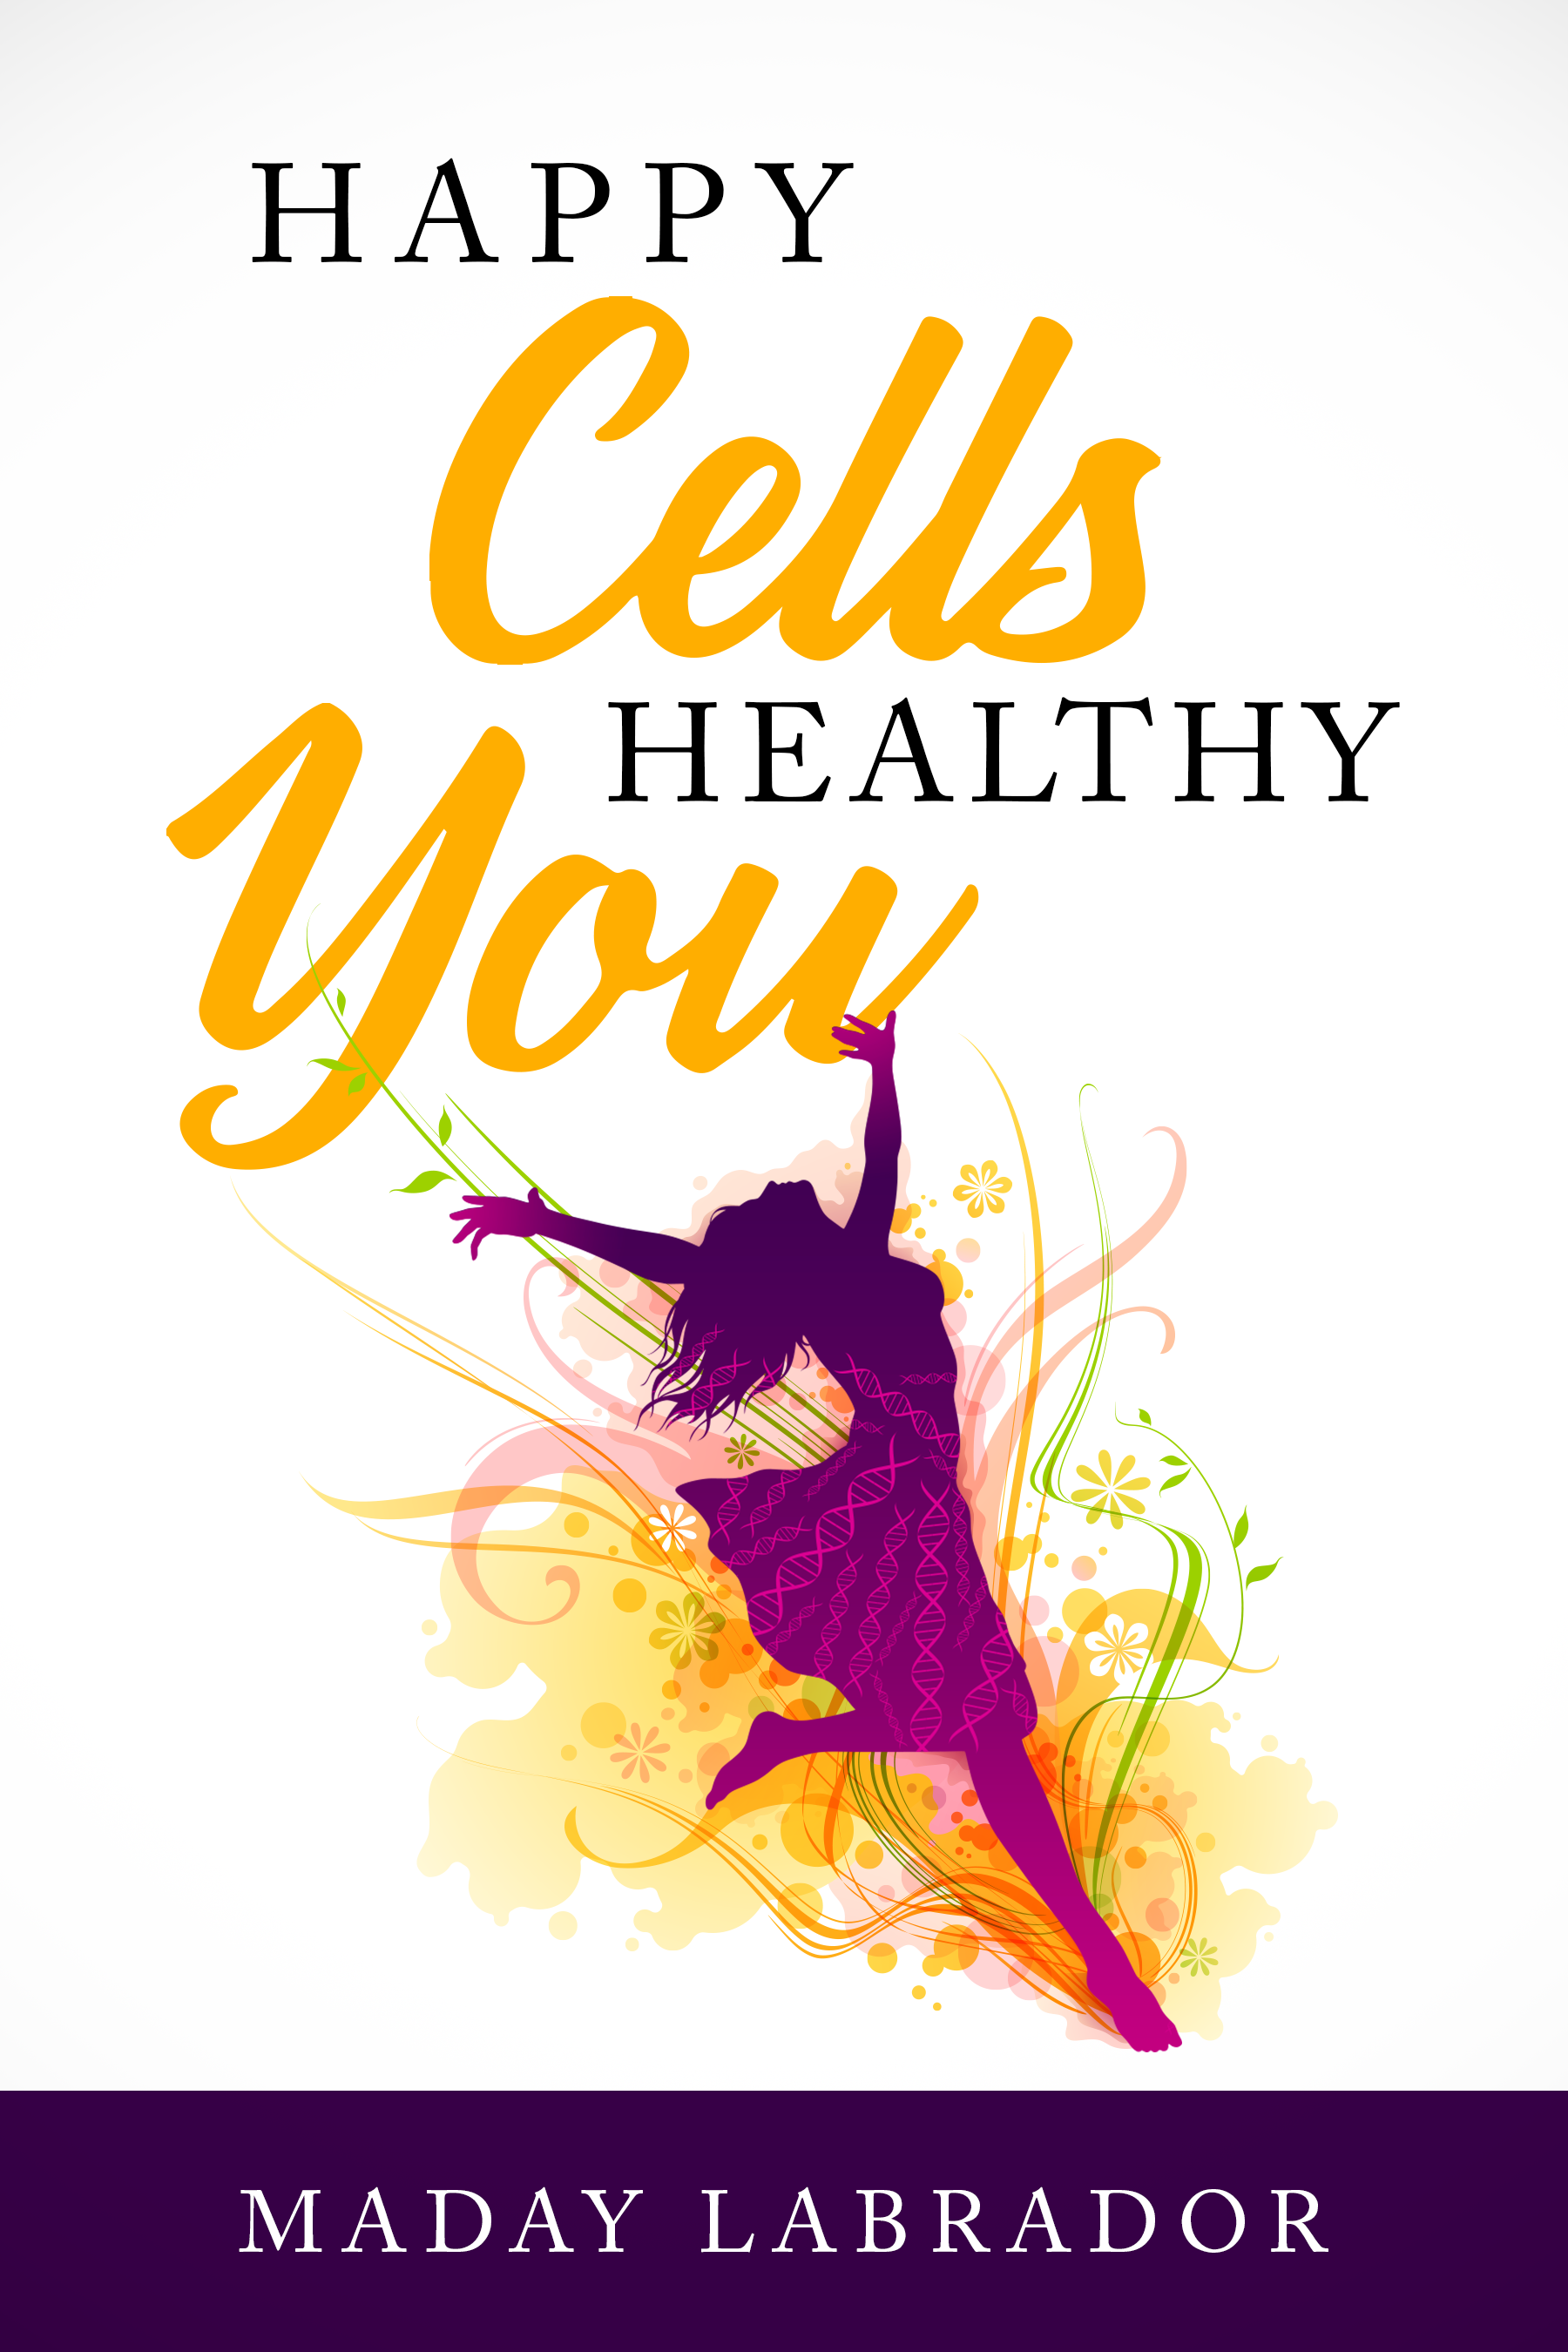 Design an attractive, happy Ebook cover for health & wellness book.